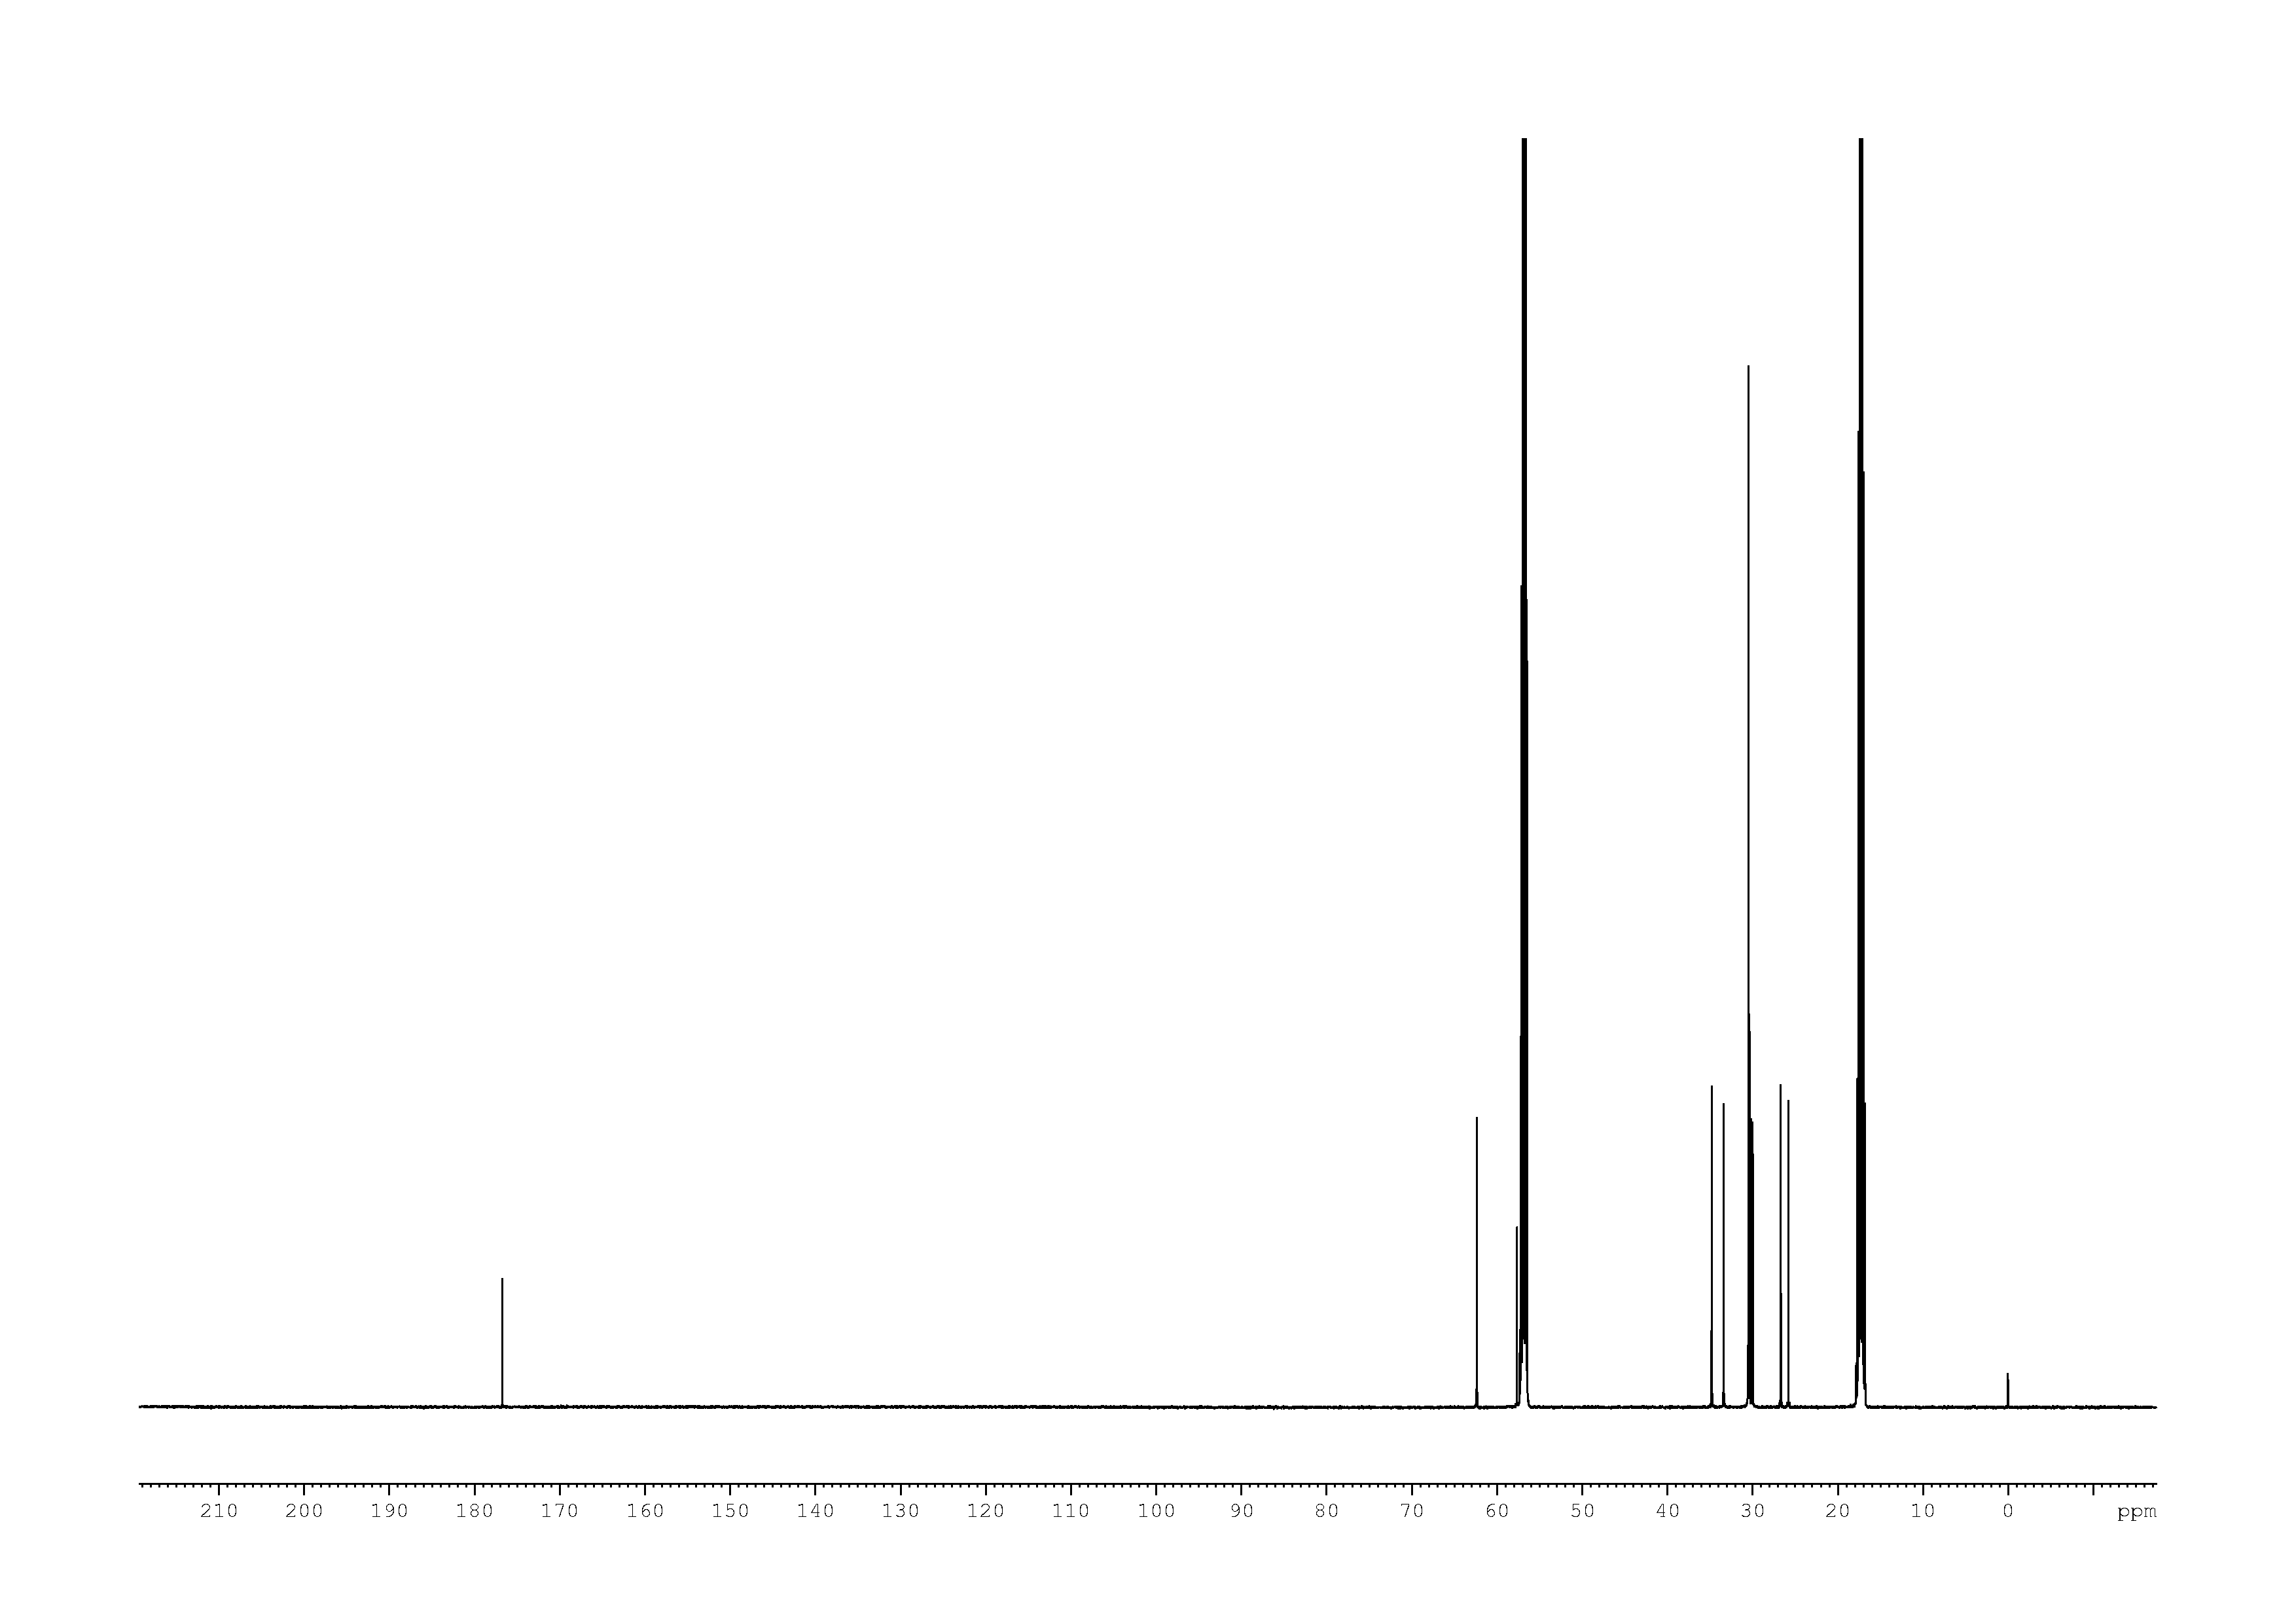 1D 13C, n/a spectrum for 16-hydroxyhexadecanoic acid